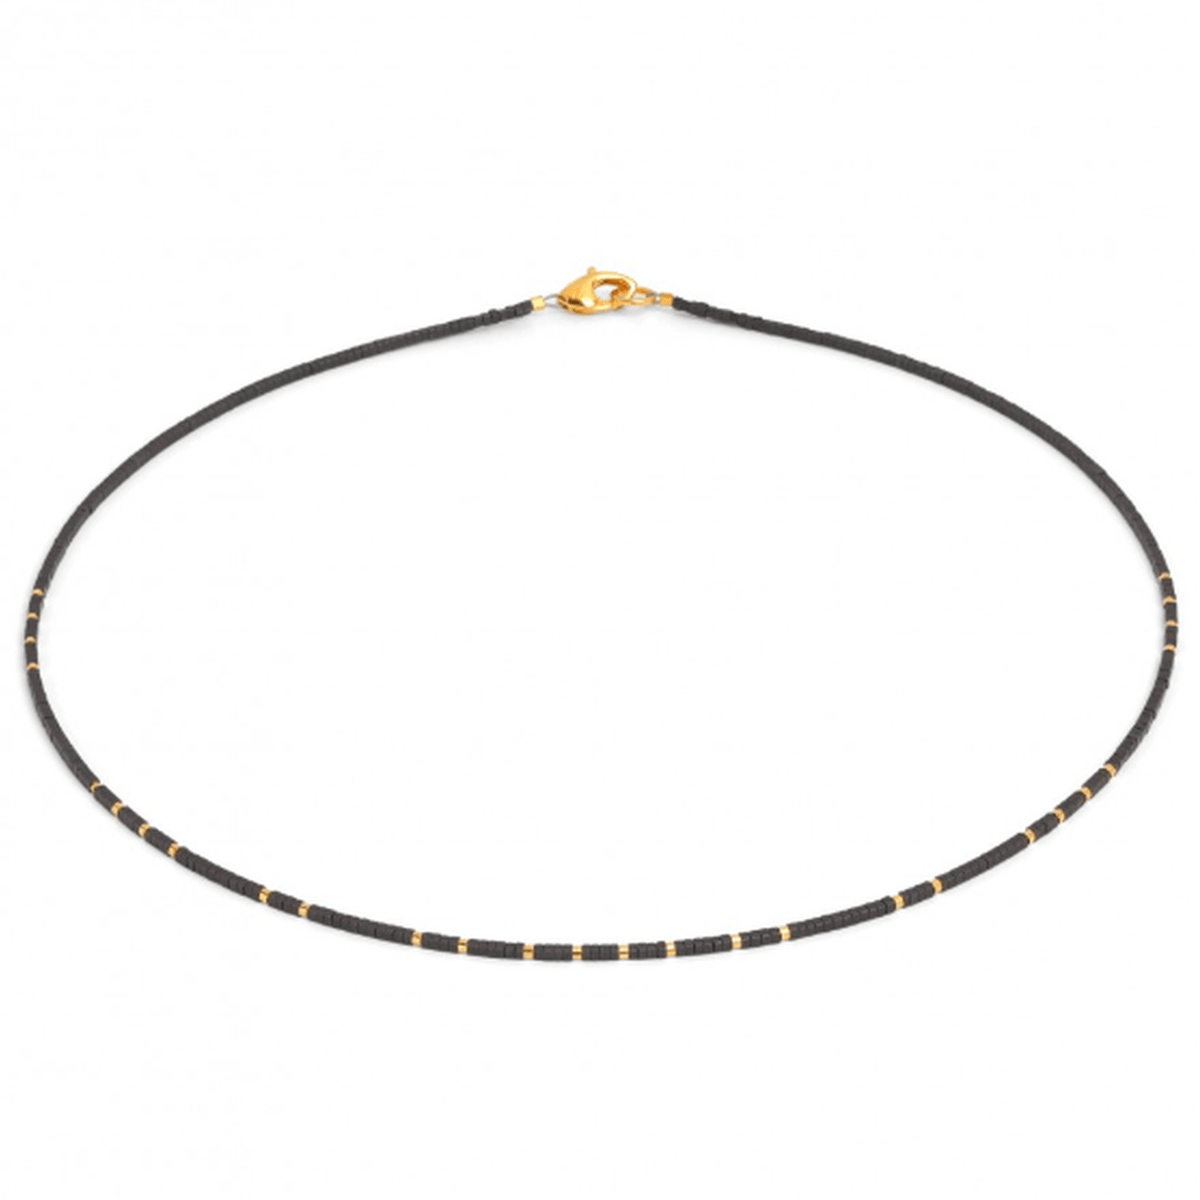 Würfel Hematine Necklace - 84497276